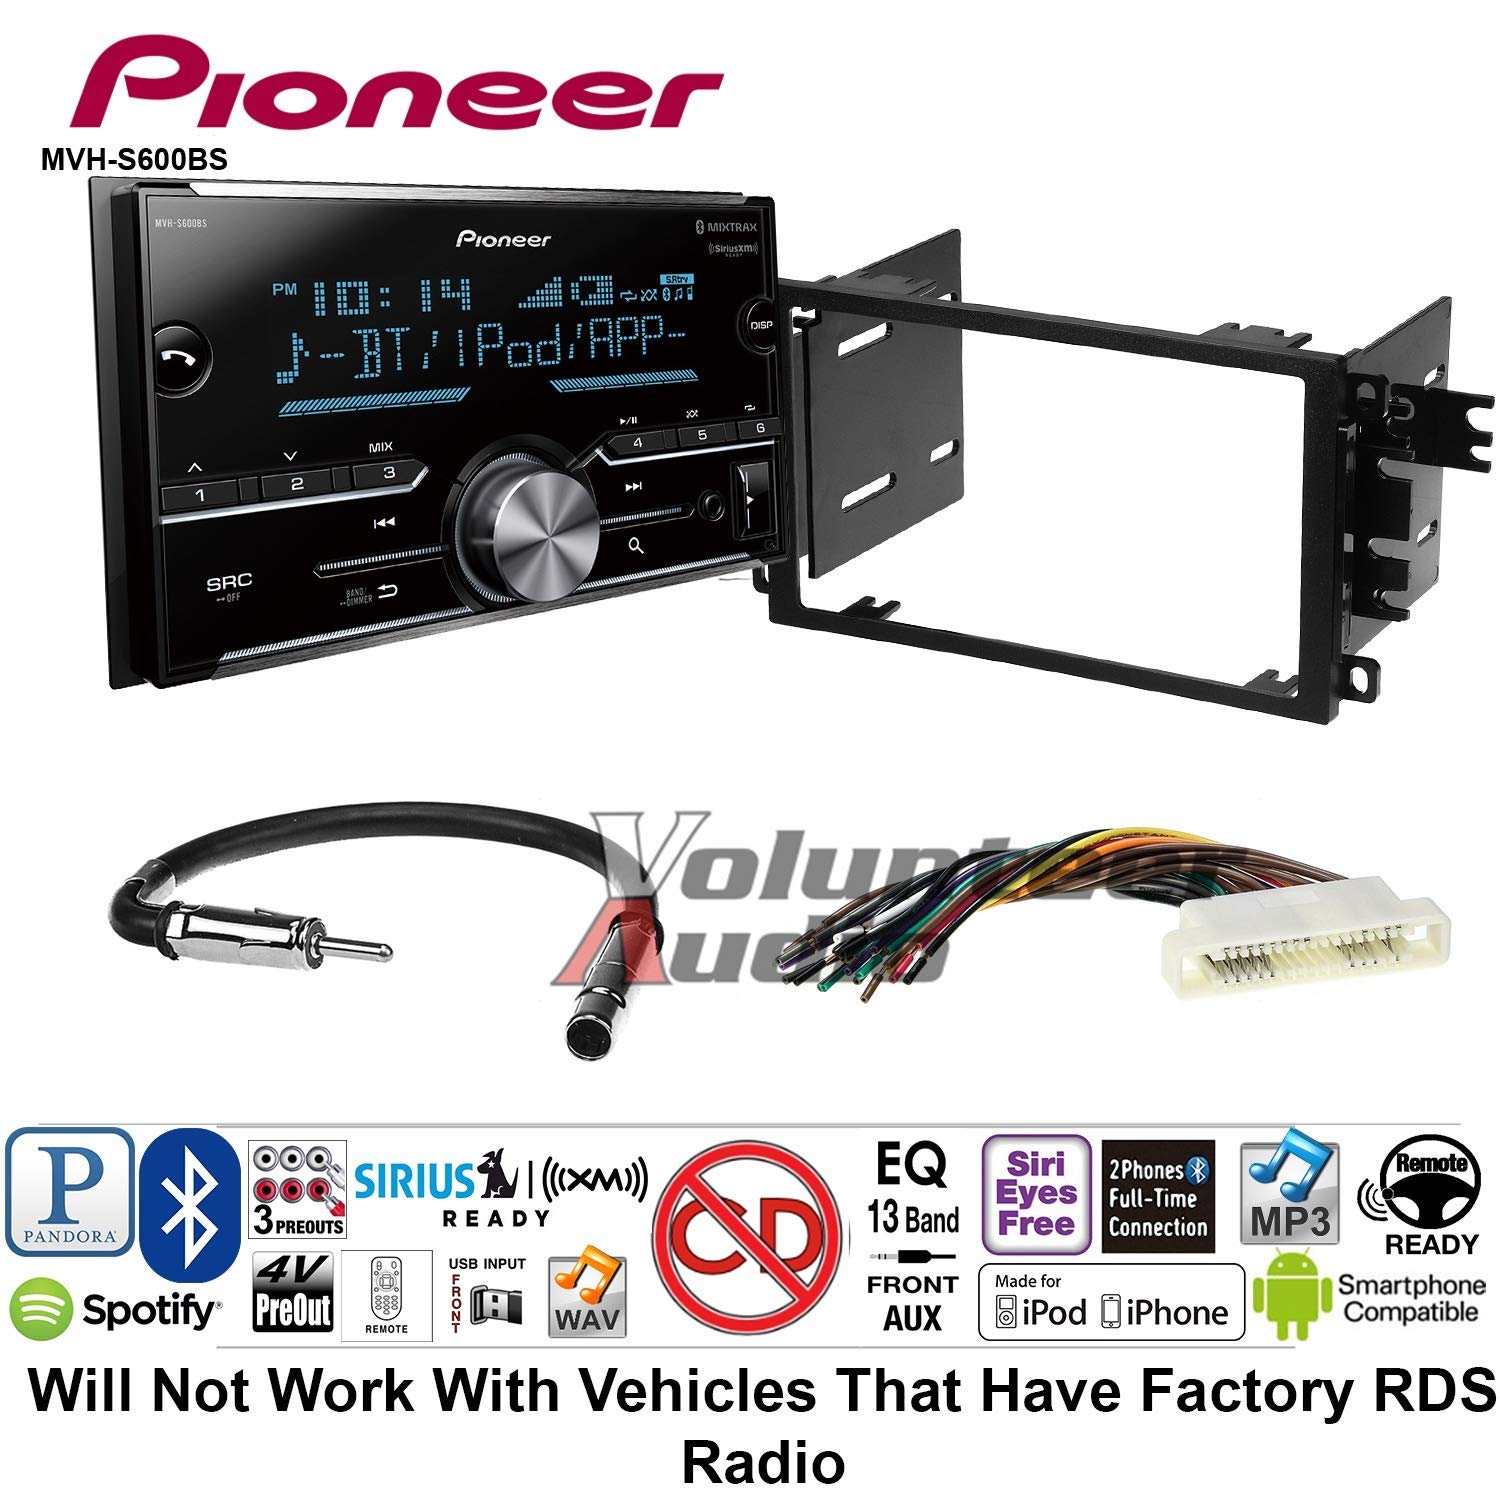 Volunteer Audio Pioneer MVH-S600BS Double Din Radio Install Kit with Bluetooth USB/AUX Fits 2000-2005 Buick Lesabre, 2000-2005 Pontiac Bonneville (Without Bose)